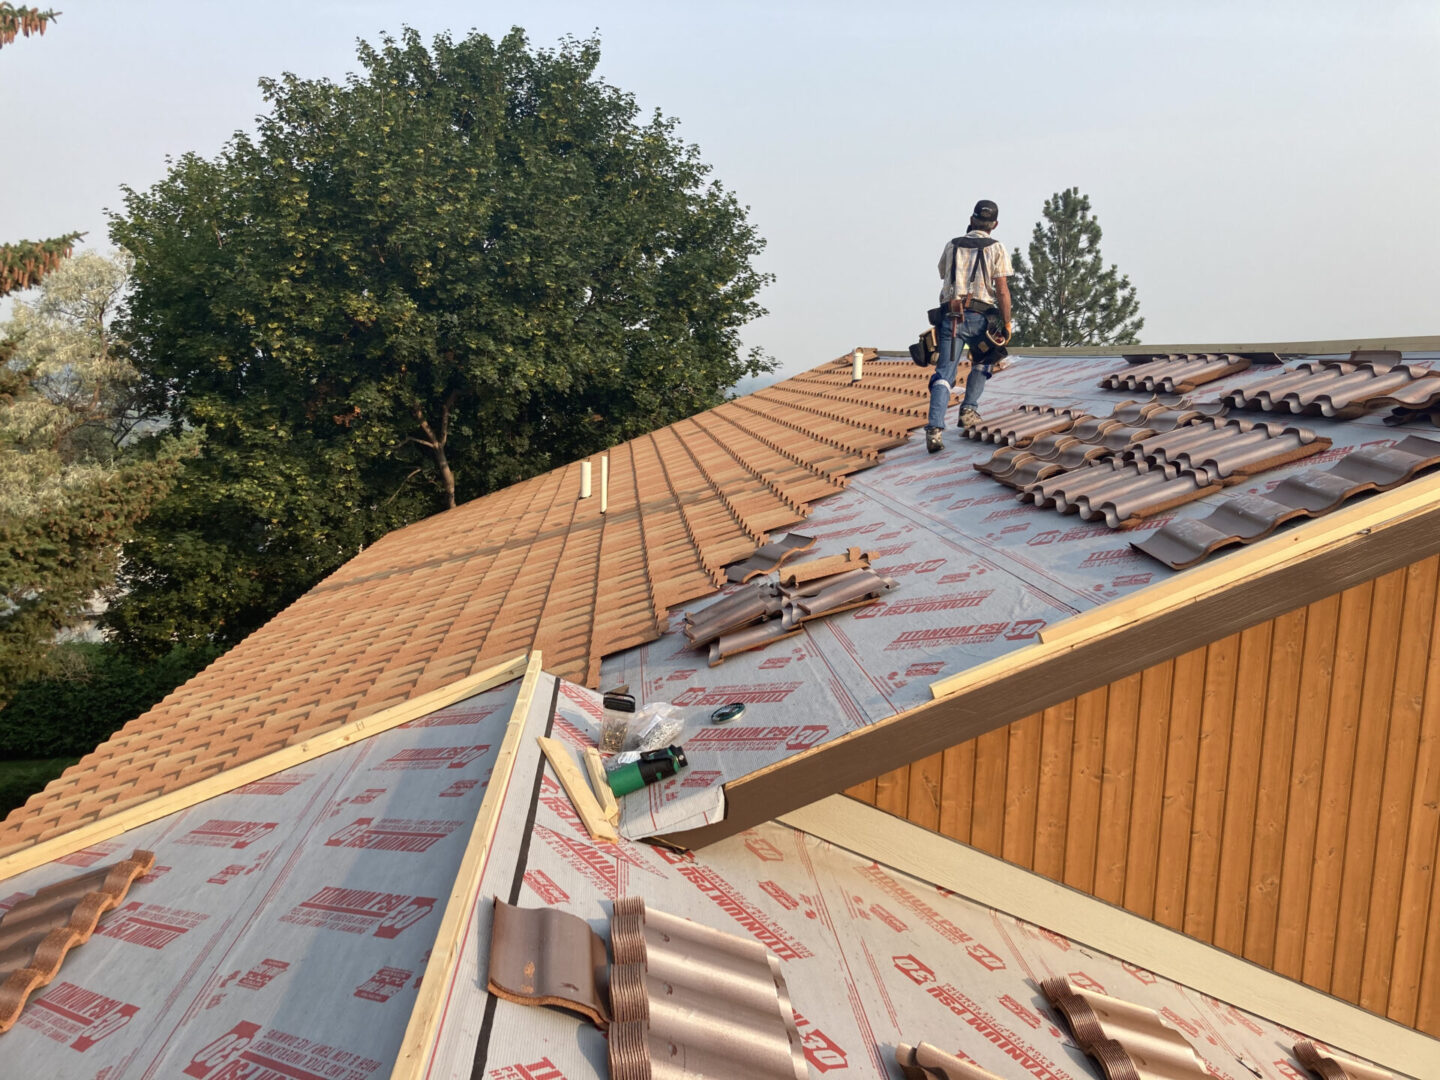 Roofing concrete installation